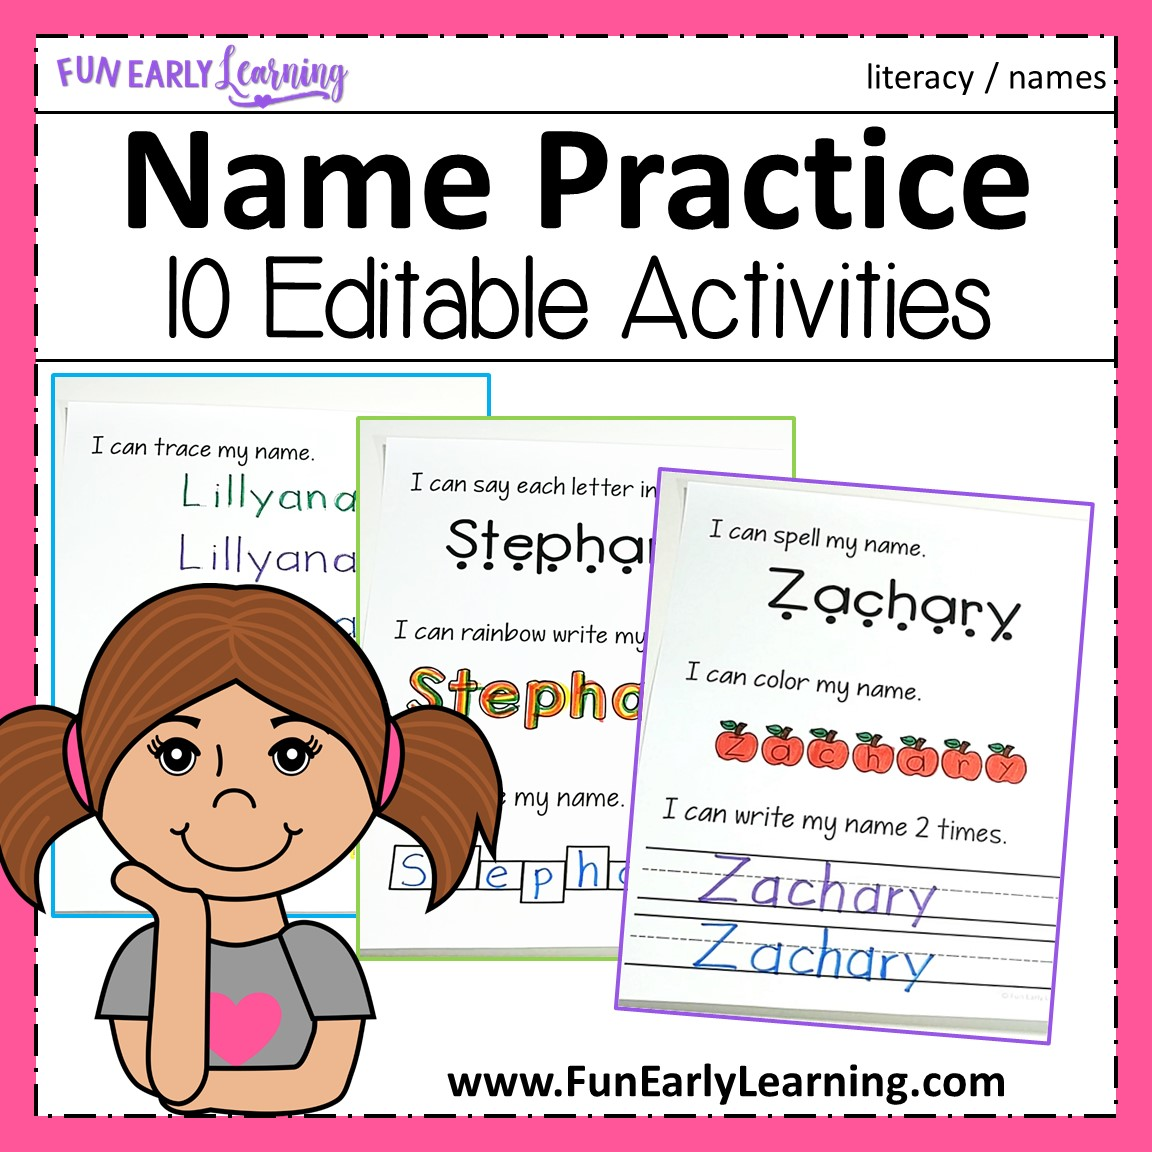 Editable Name Practice Activities For Preschool And